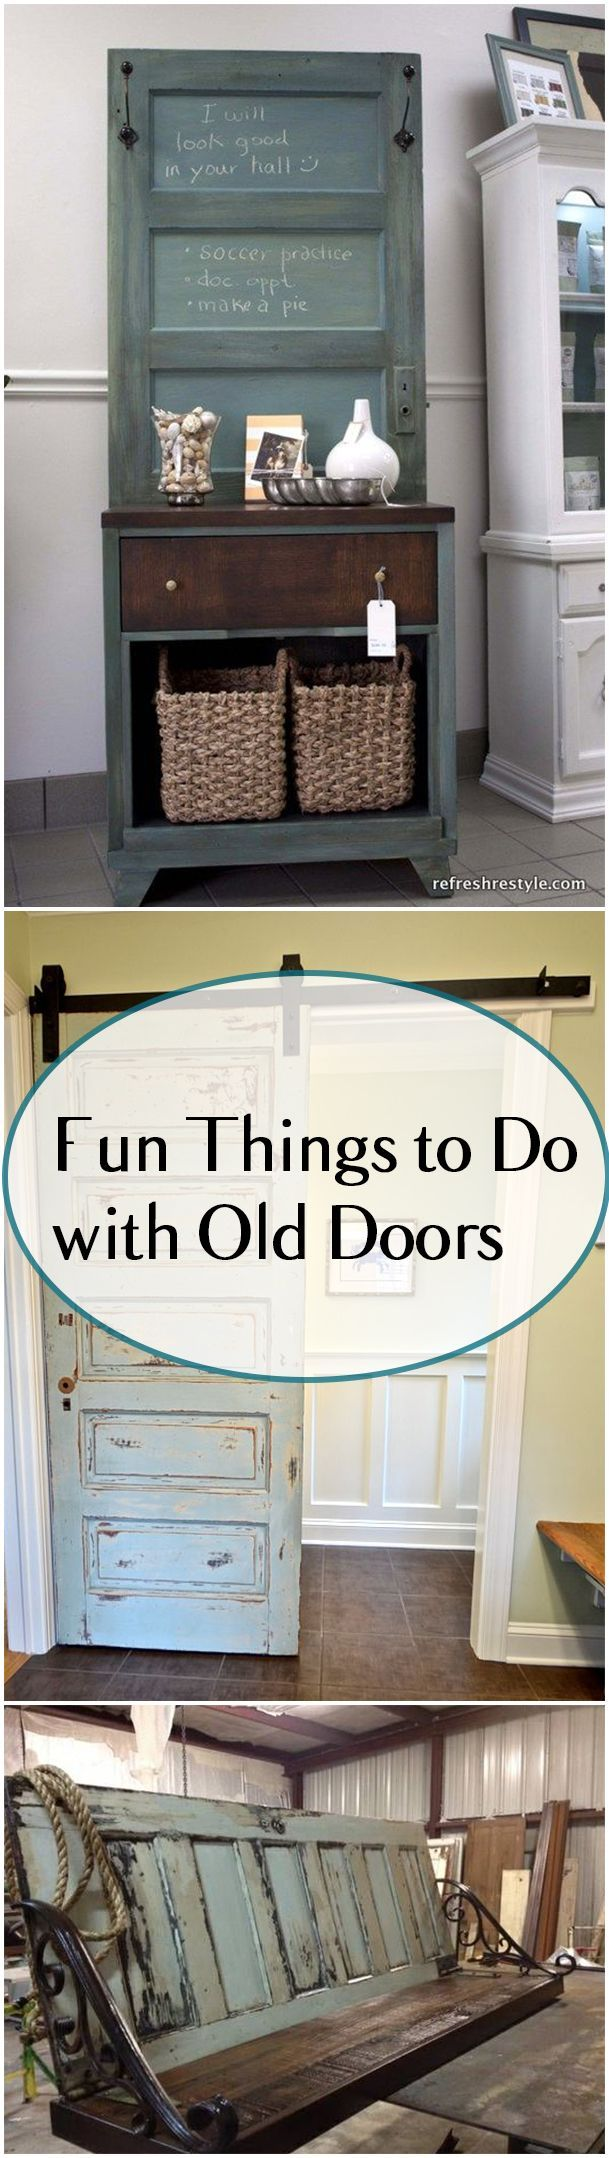 online shop fashion Fun Projects you can make with old doors  Amazing upcycled door projects